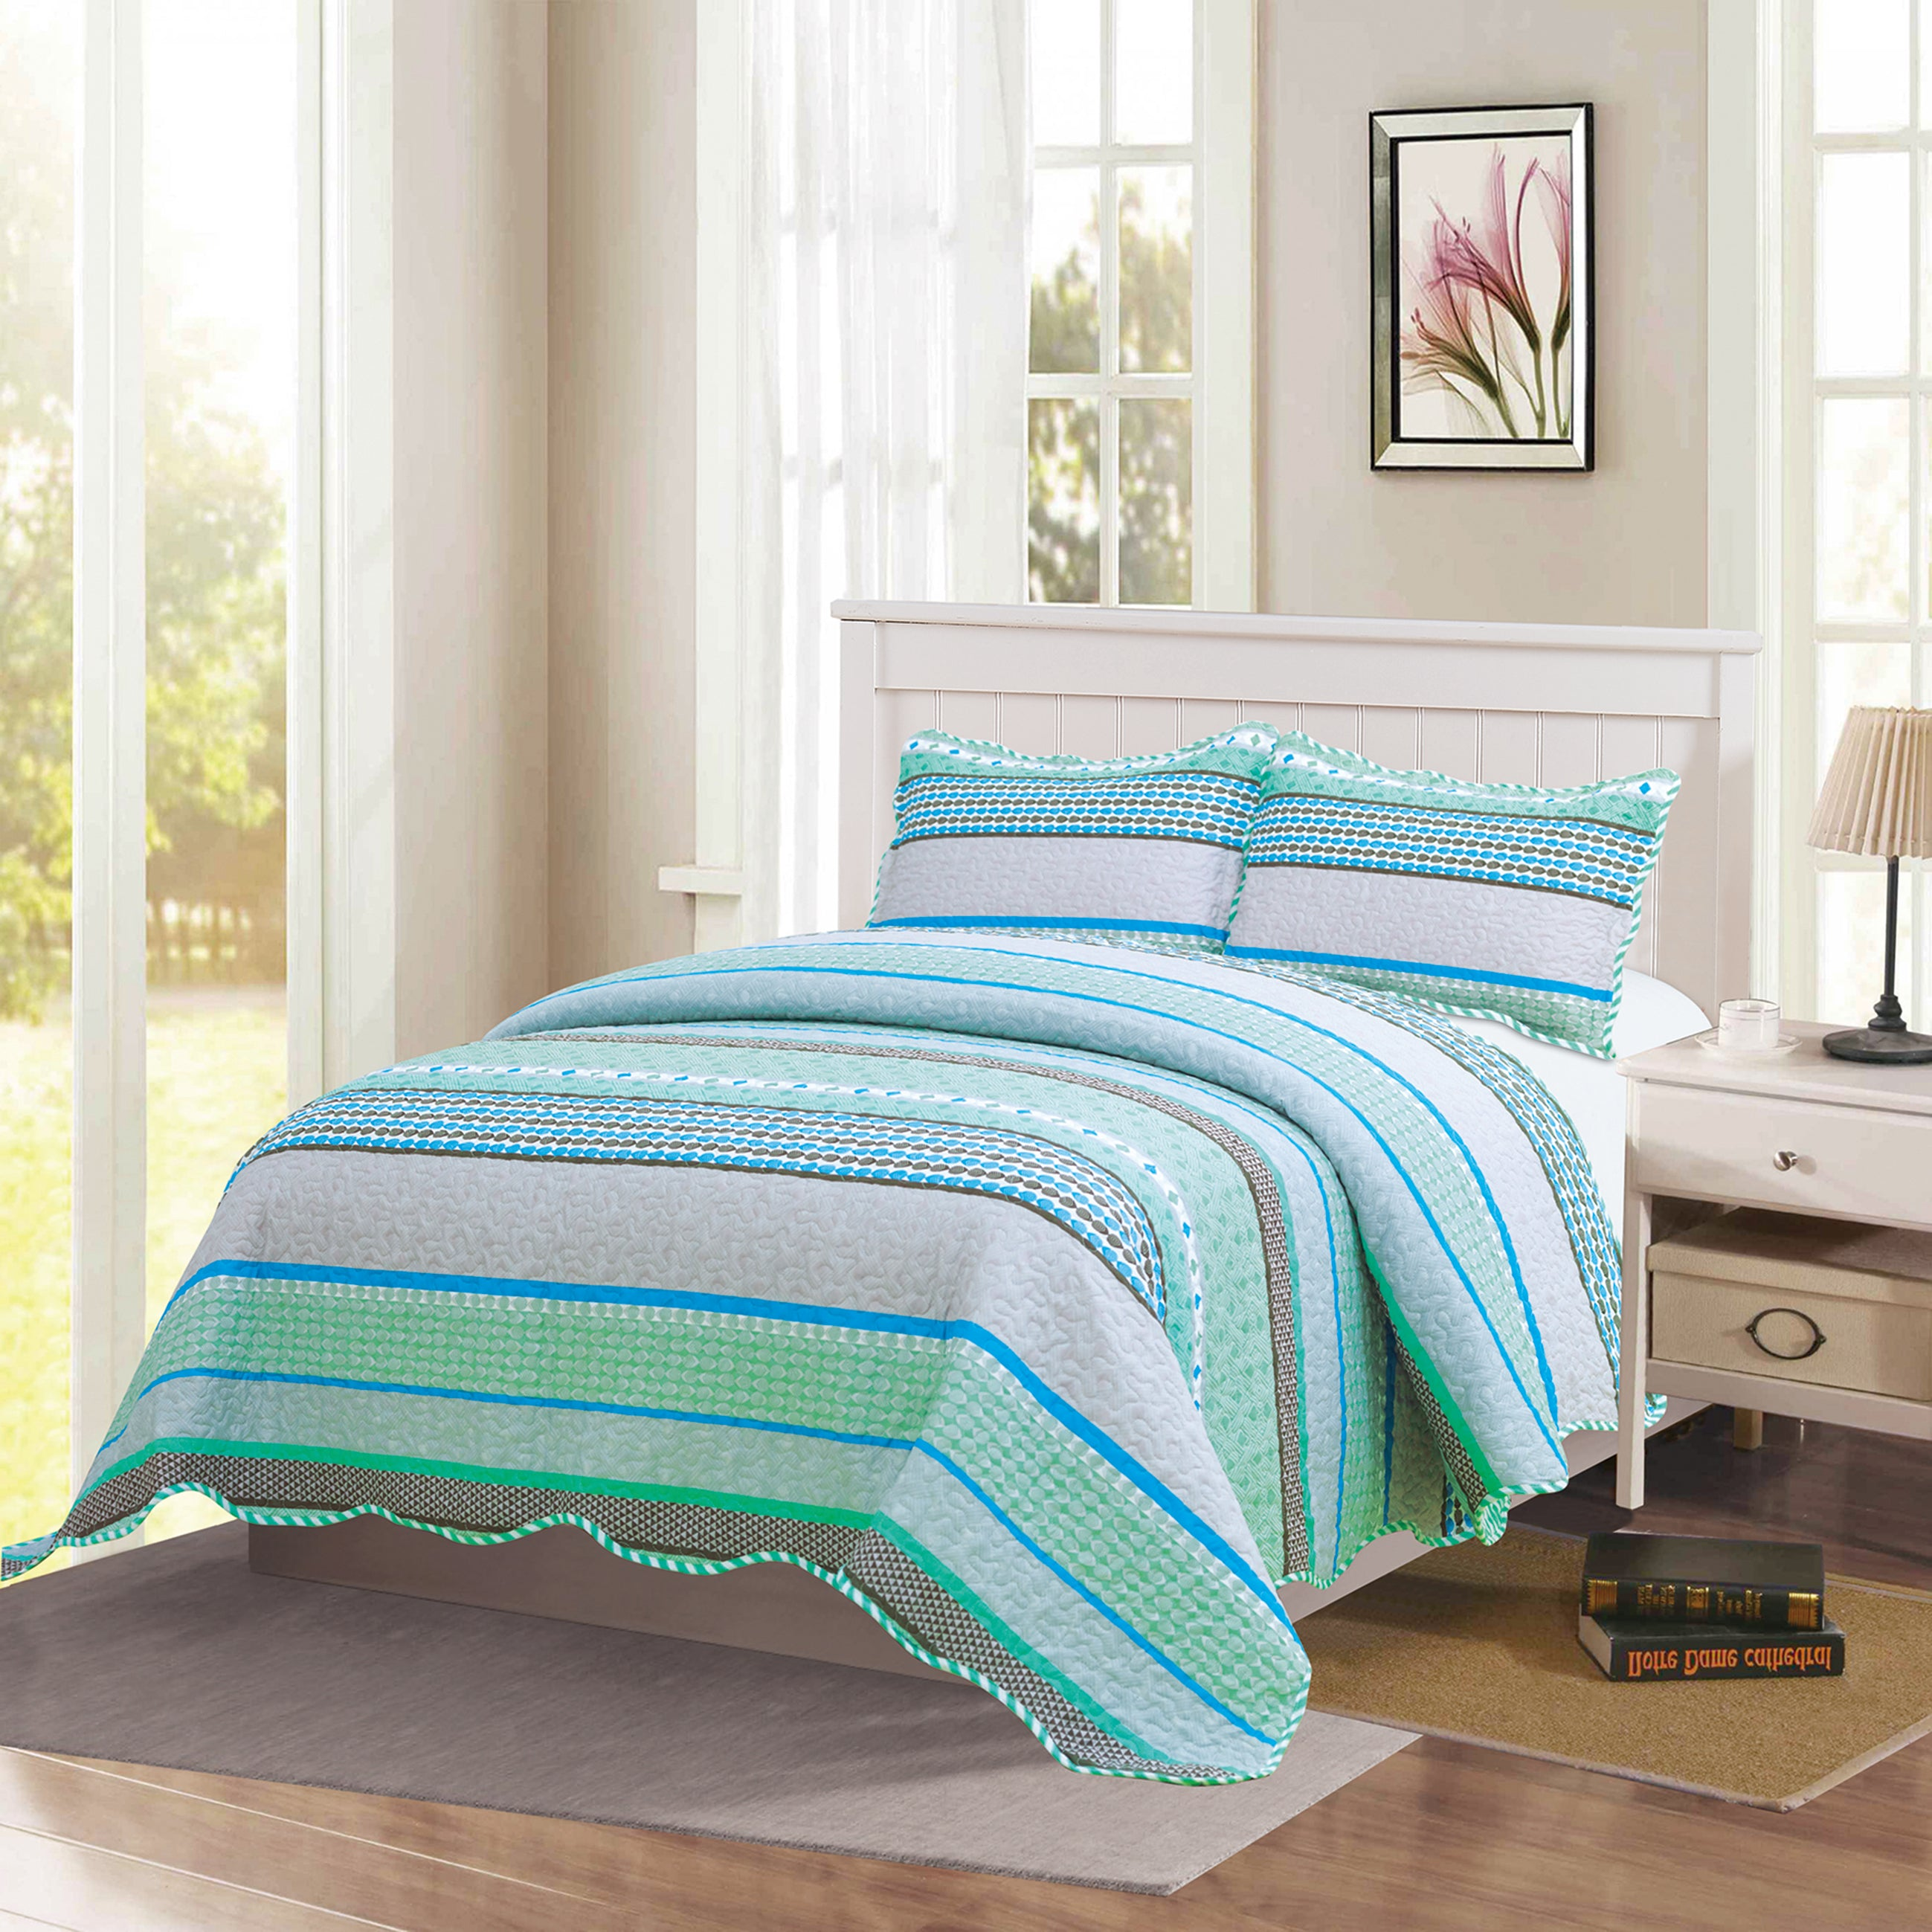 Monica - 3 Piece Quilt bedspread Set queen and king size - Sage - Glory Home Design